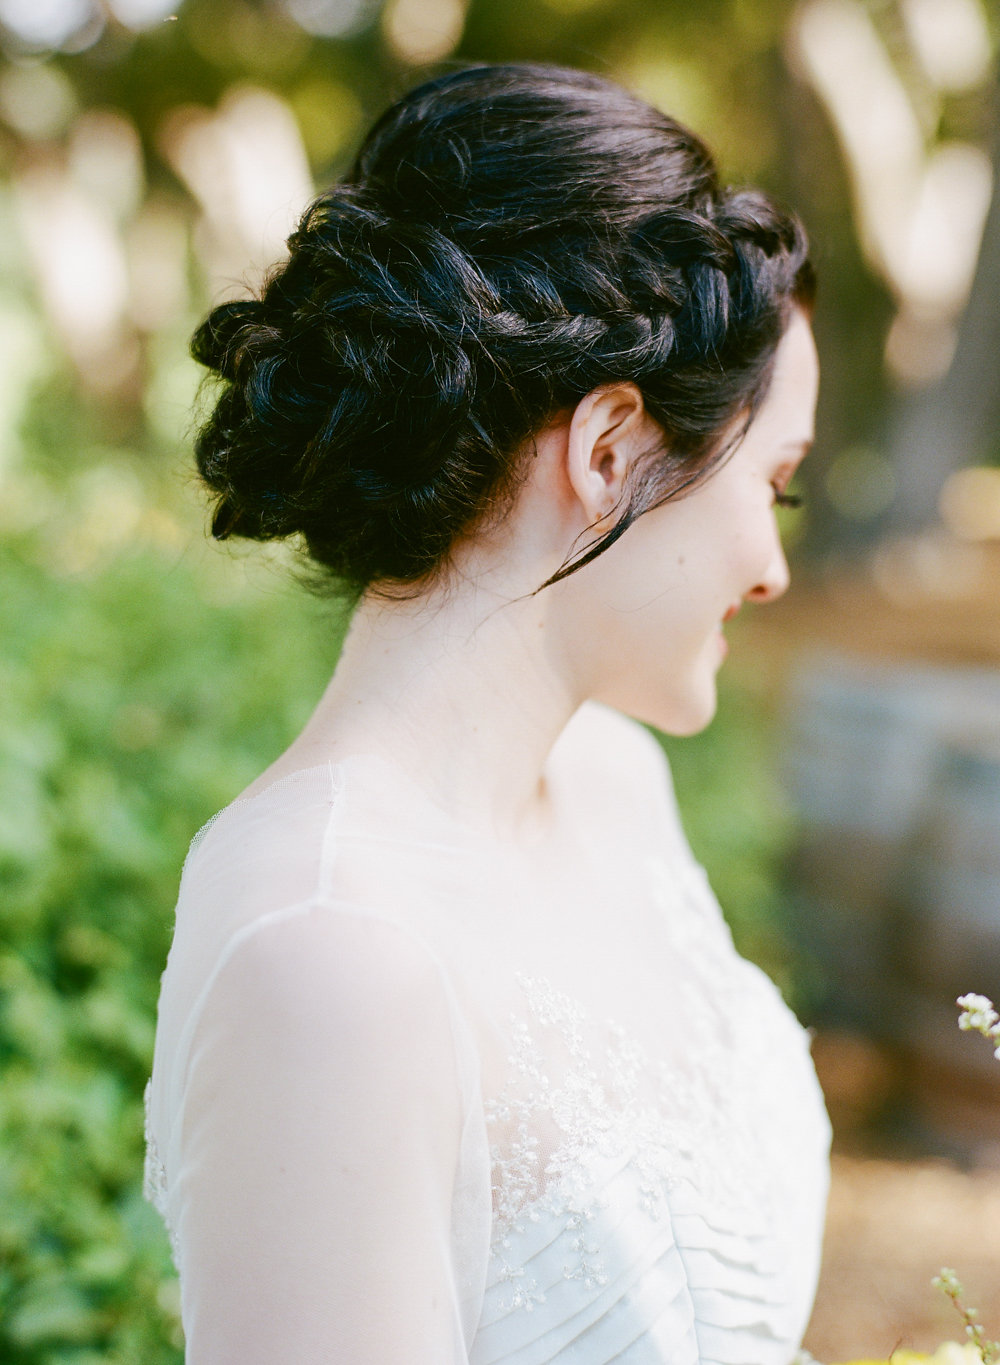 braided wedding hair - photo by Taken by Sarah Photography http://ruffledblog.com/intimate-rustic-chic-wedding-inspiration